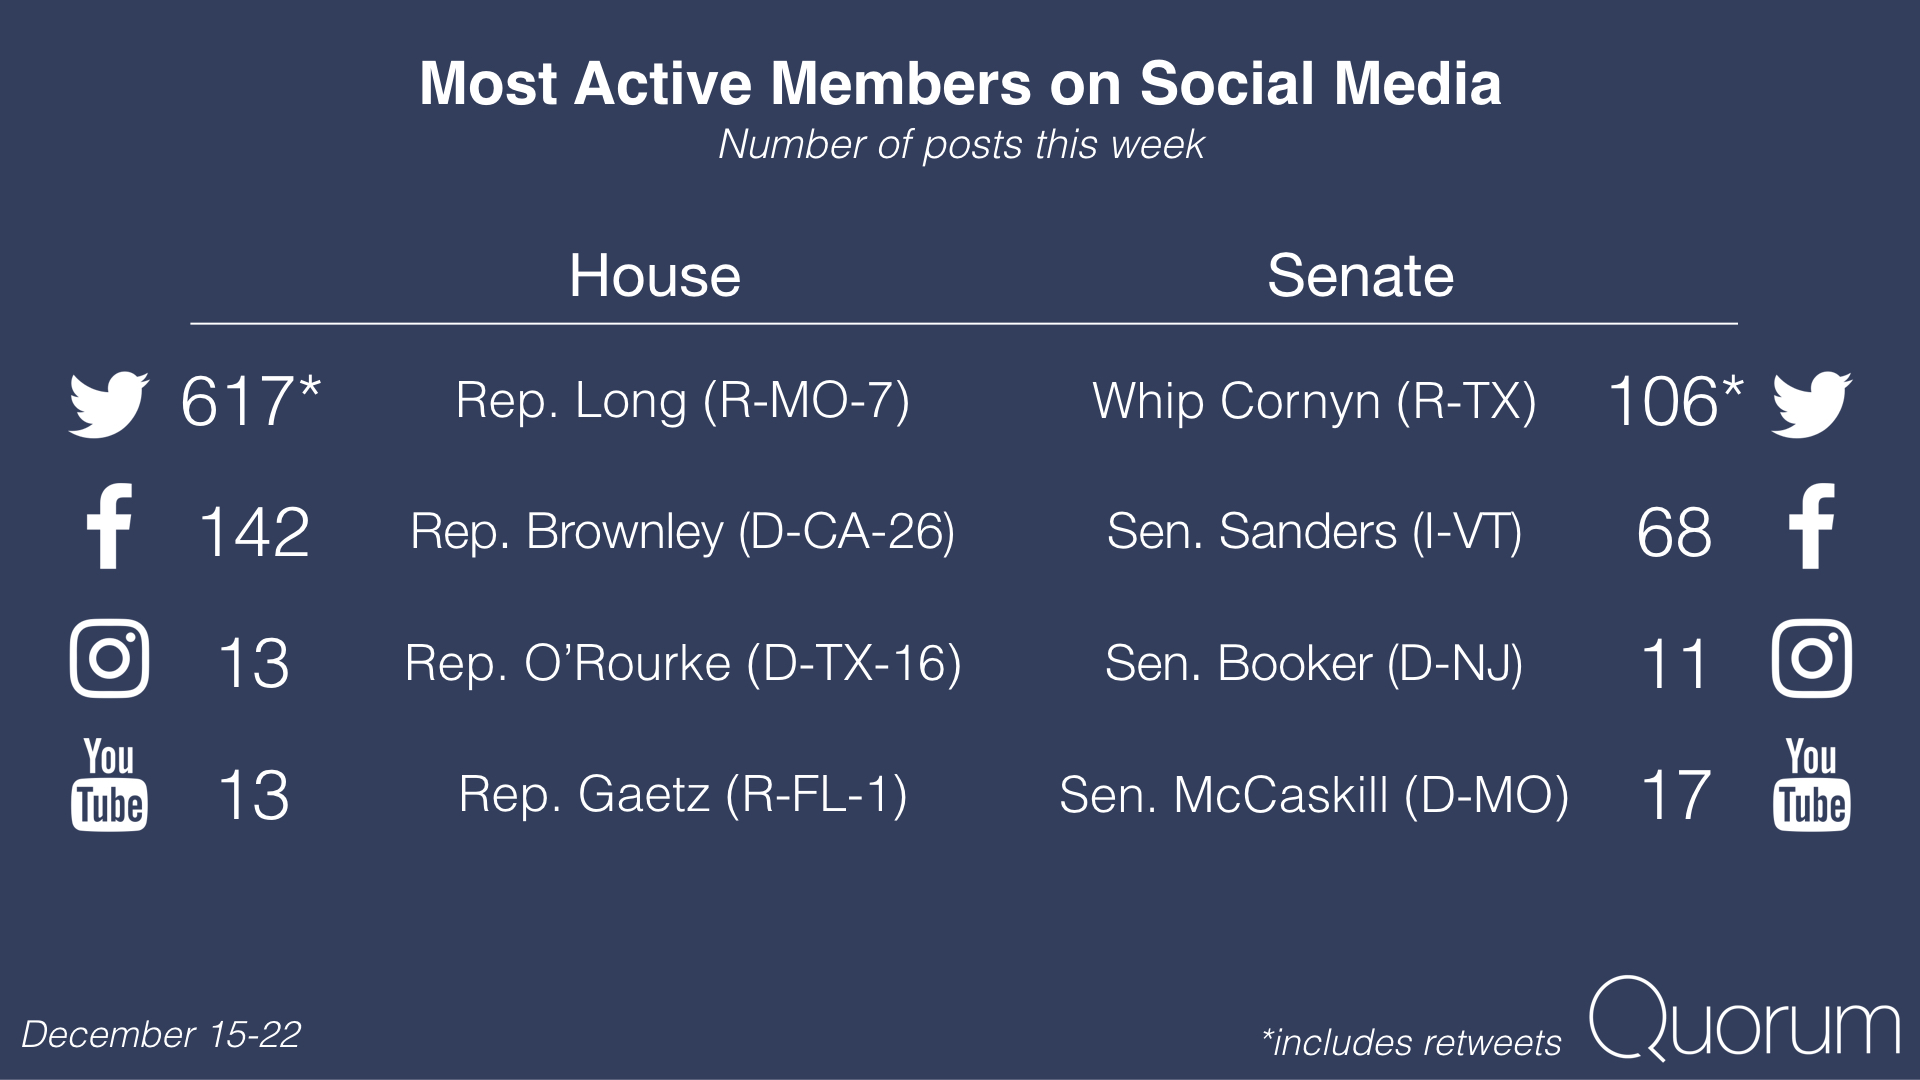 Most active members on social media